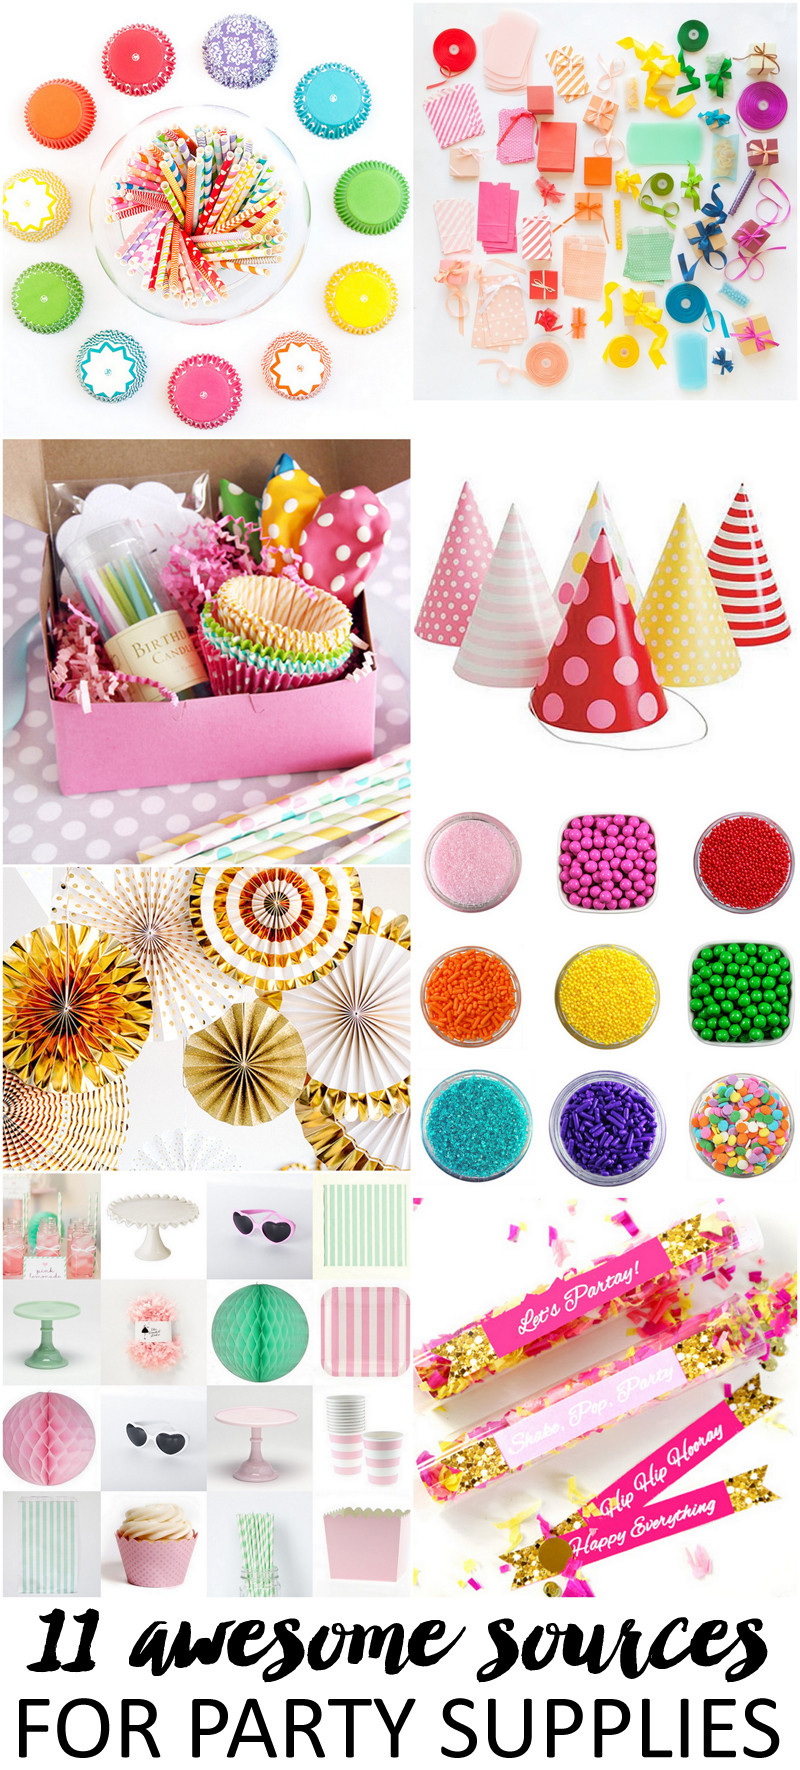 Best ideas about Birthday Party Supplies Online . Save or Pin 11 Awesome Sources For Party Supplies Now.